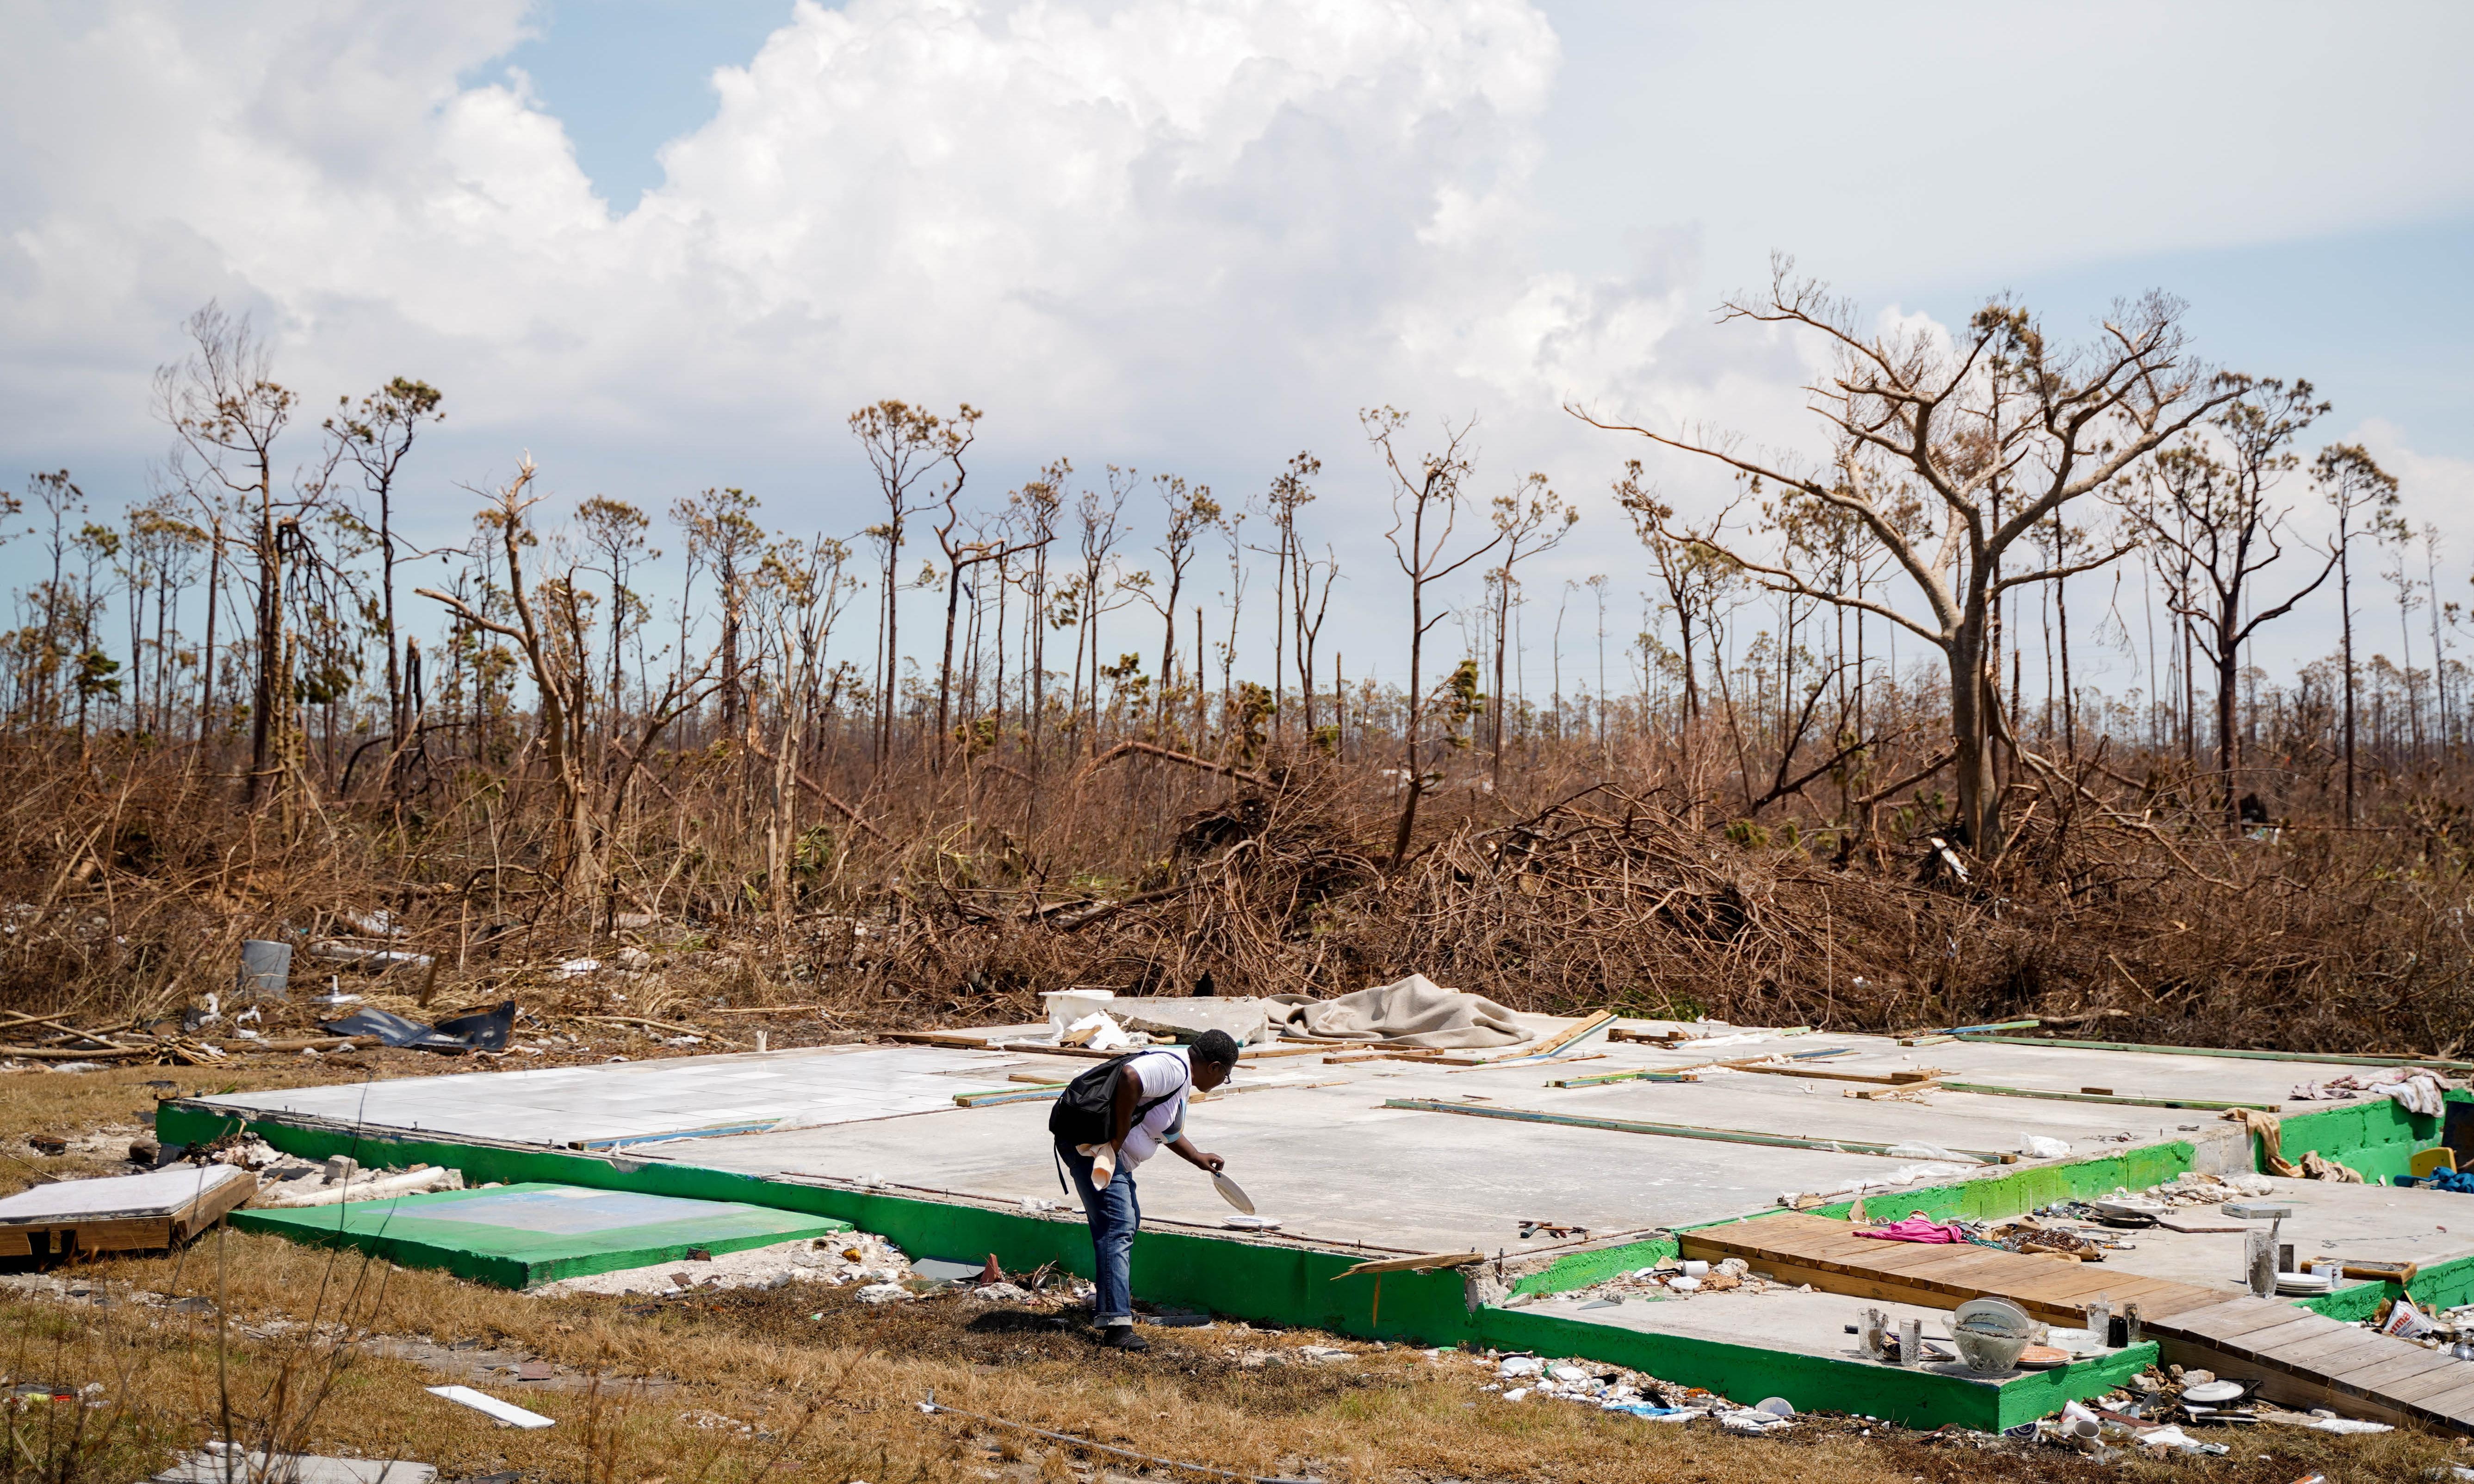 The town turned to rubble by Hurricane Dorian – in pictures